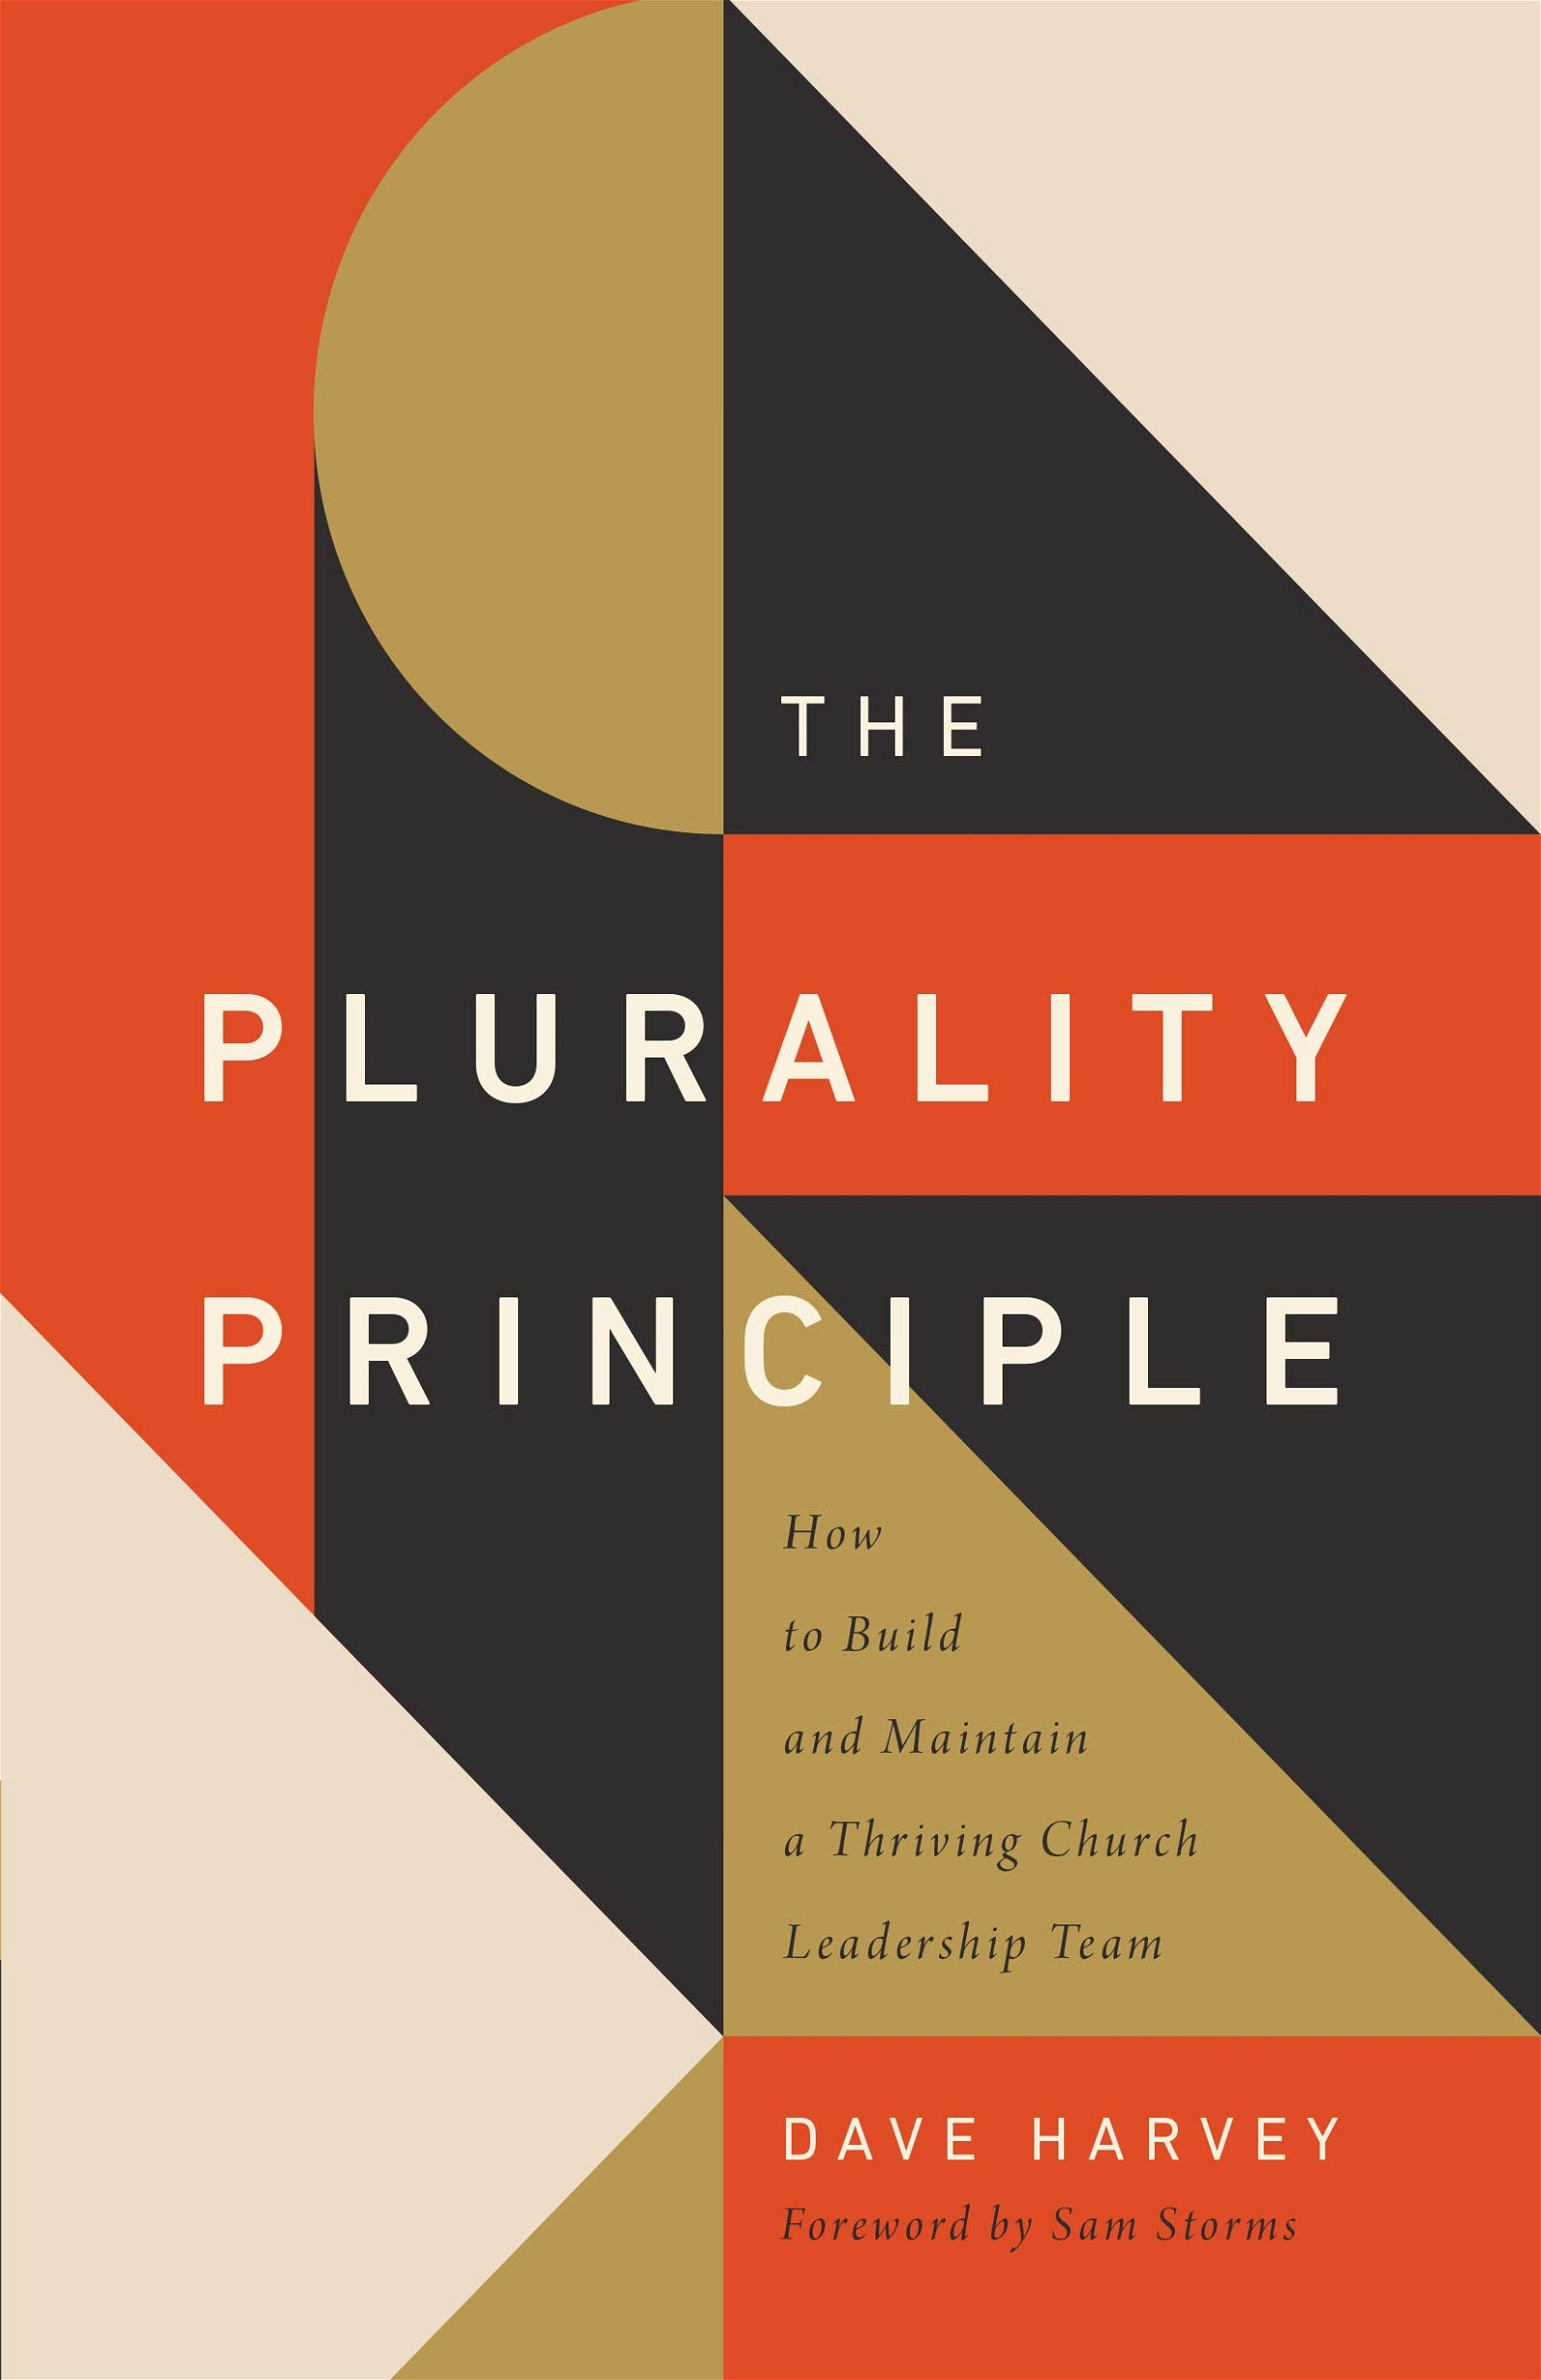 The Plurality Principle: How to Build and Maintain a Thriving Church Leadership Team by Dave Harvey 1